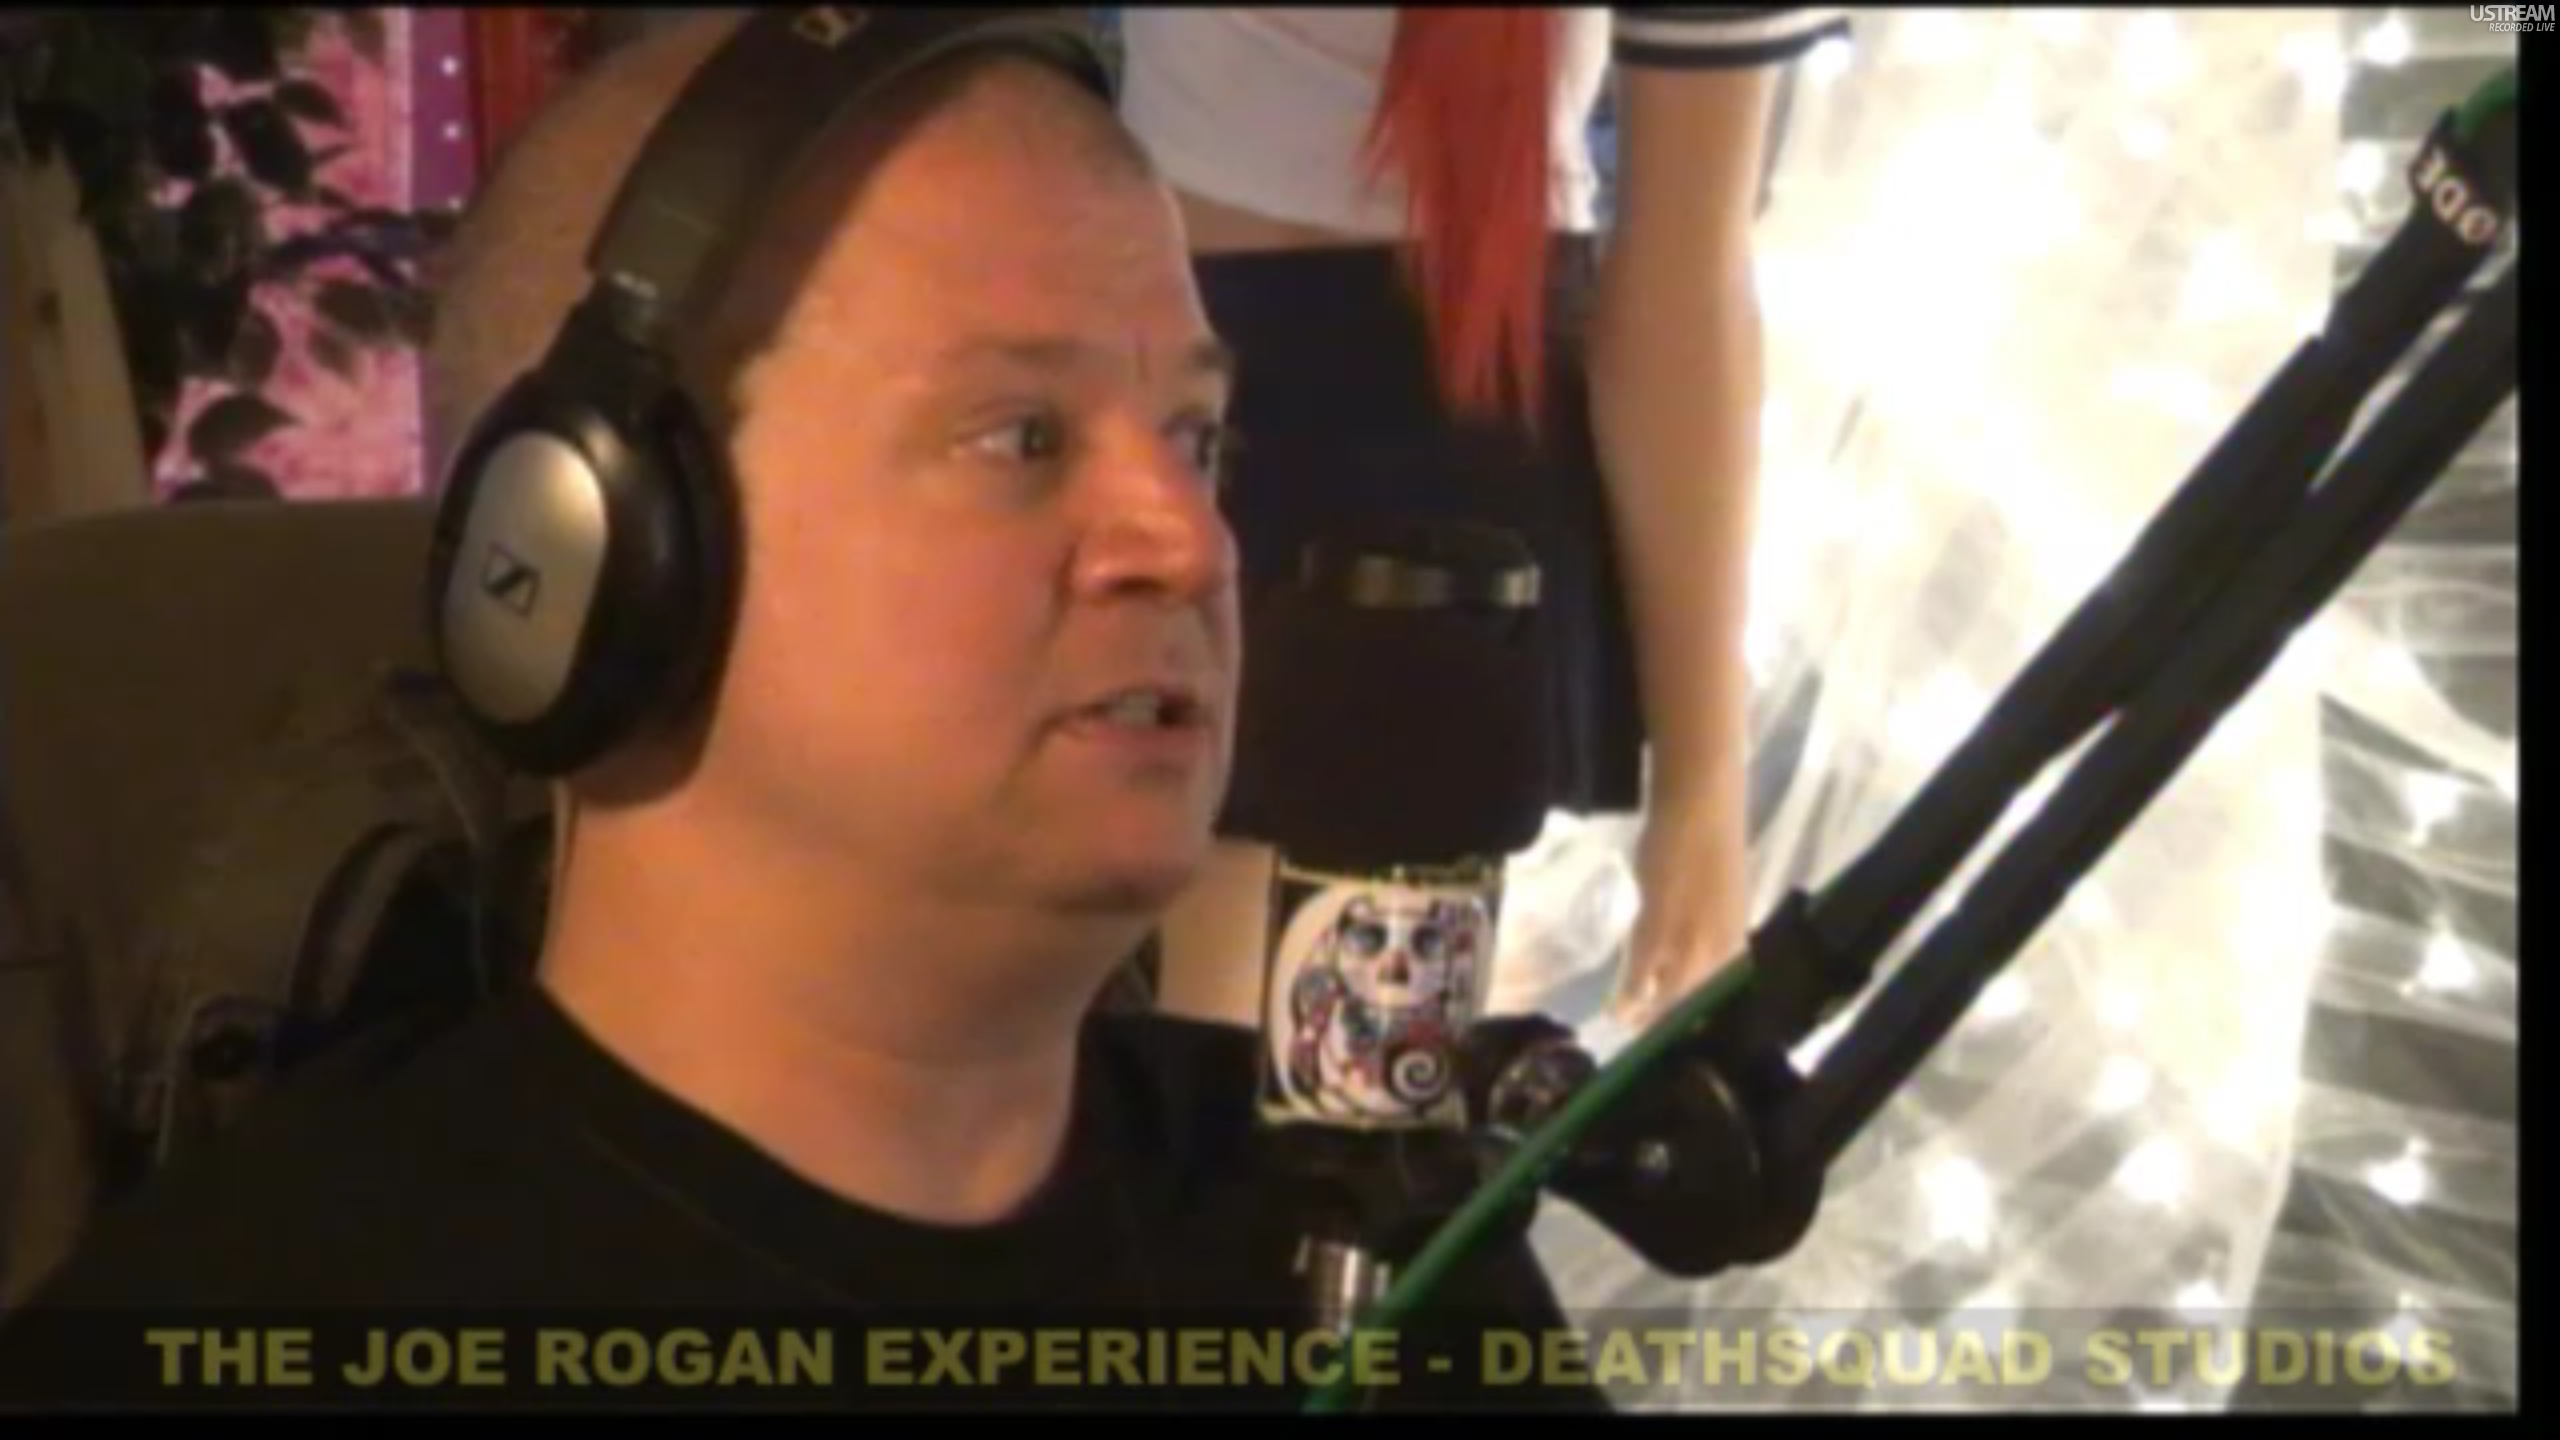 The Joe Rogan Experience #233 - Jim Norton, Brian Redban